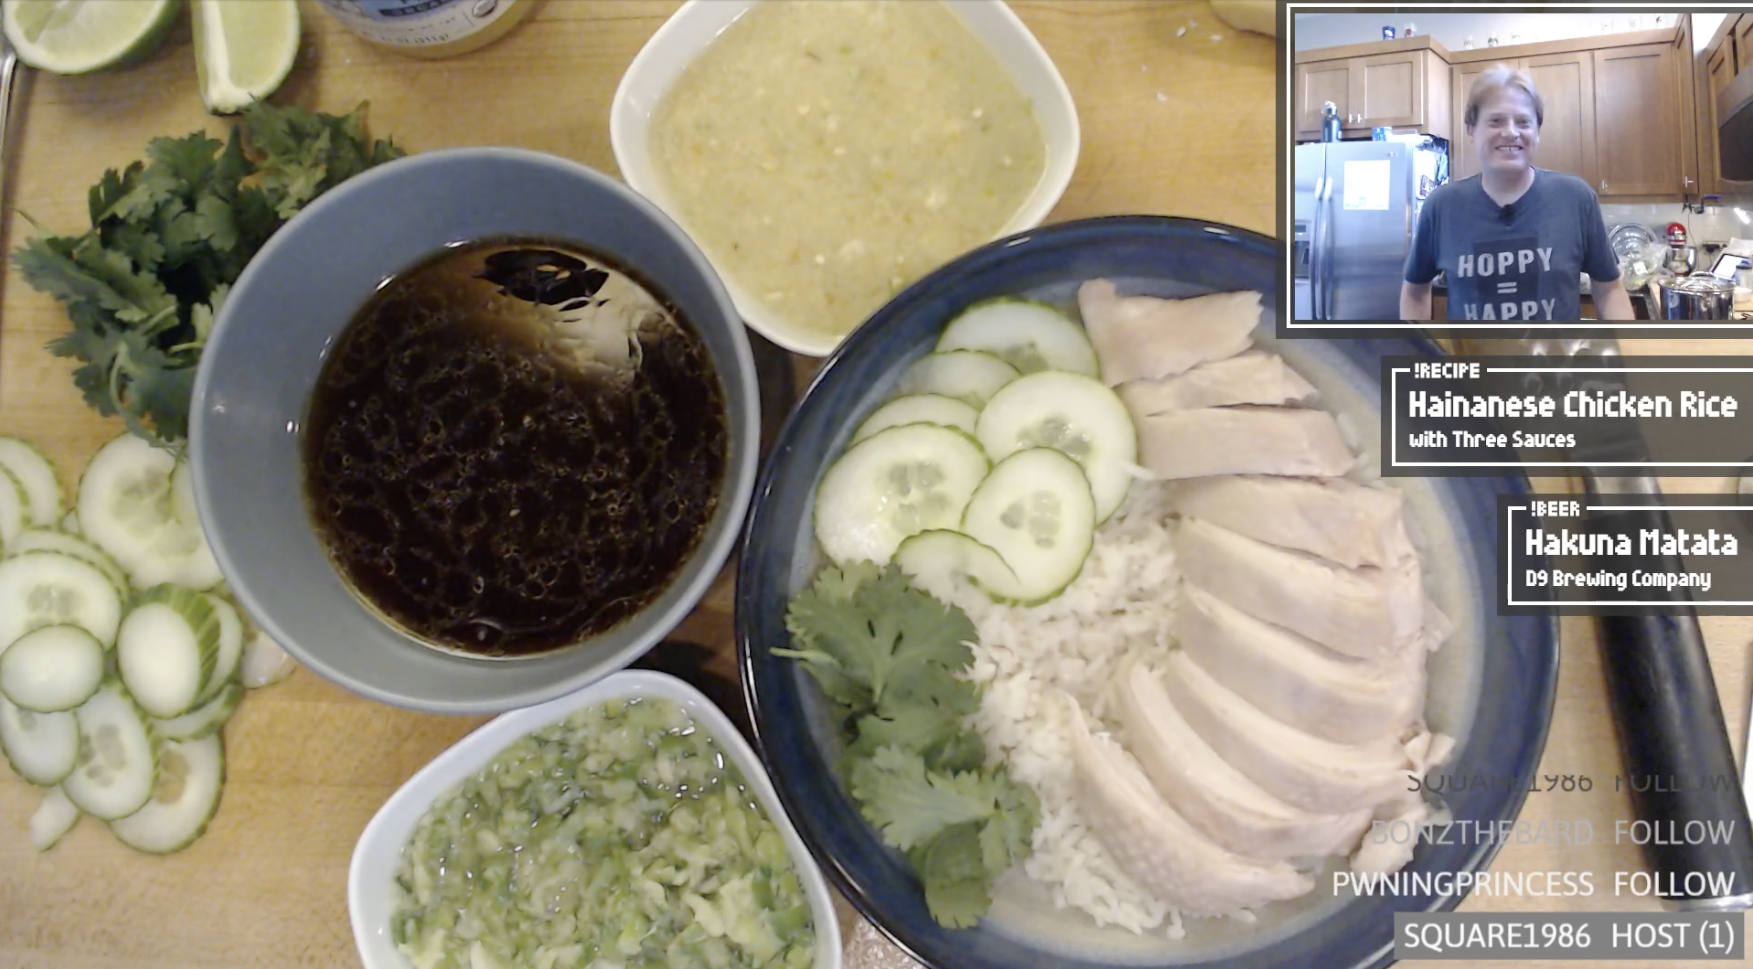 An example screenshot with a plating of Hainanese chicken rice.